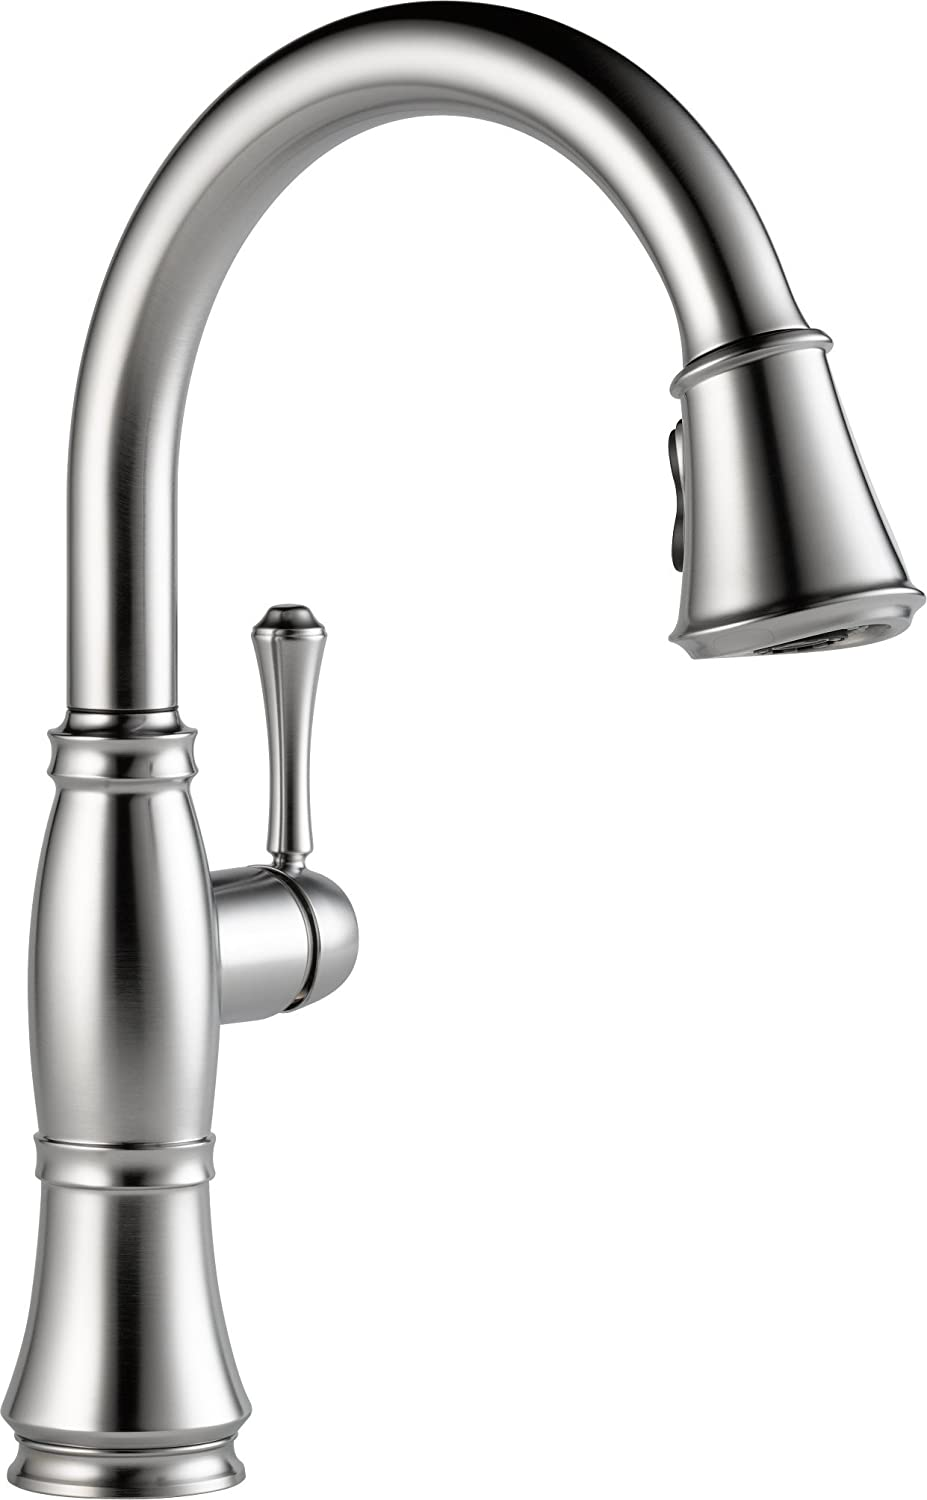 DELTA 9197 best pull down kitchen faucet